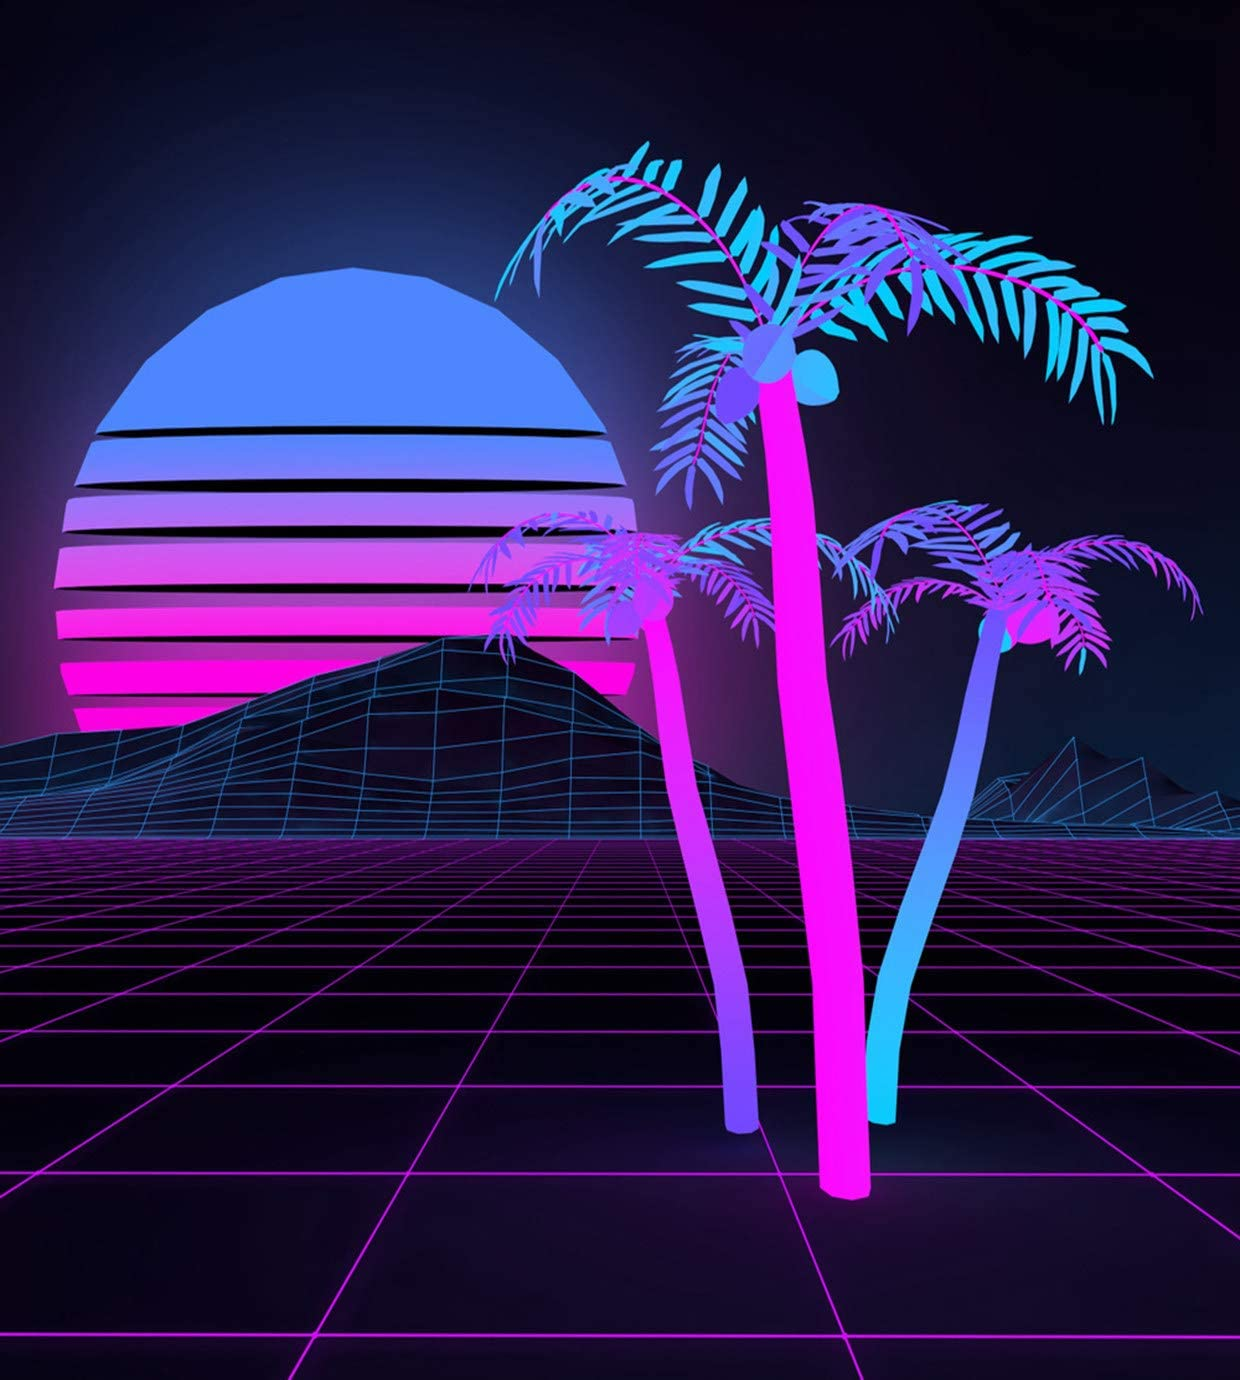 Eaiizer Alien Poster 80'S Retro Futuristic Landscape Light Grid Surface and Palms Against Wall Art Print Artwork for Home Bedroom Office Dorm Decor Unframed Painting 24x36 Inches